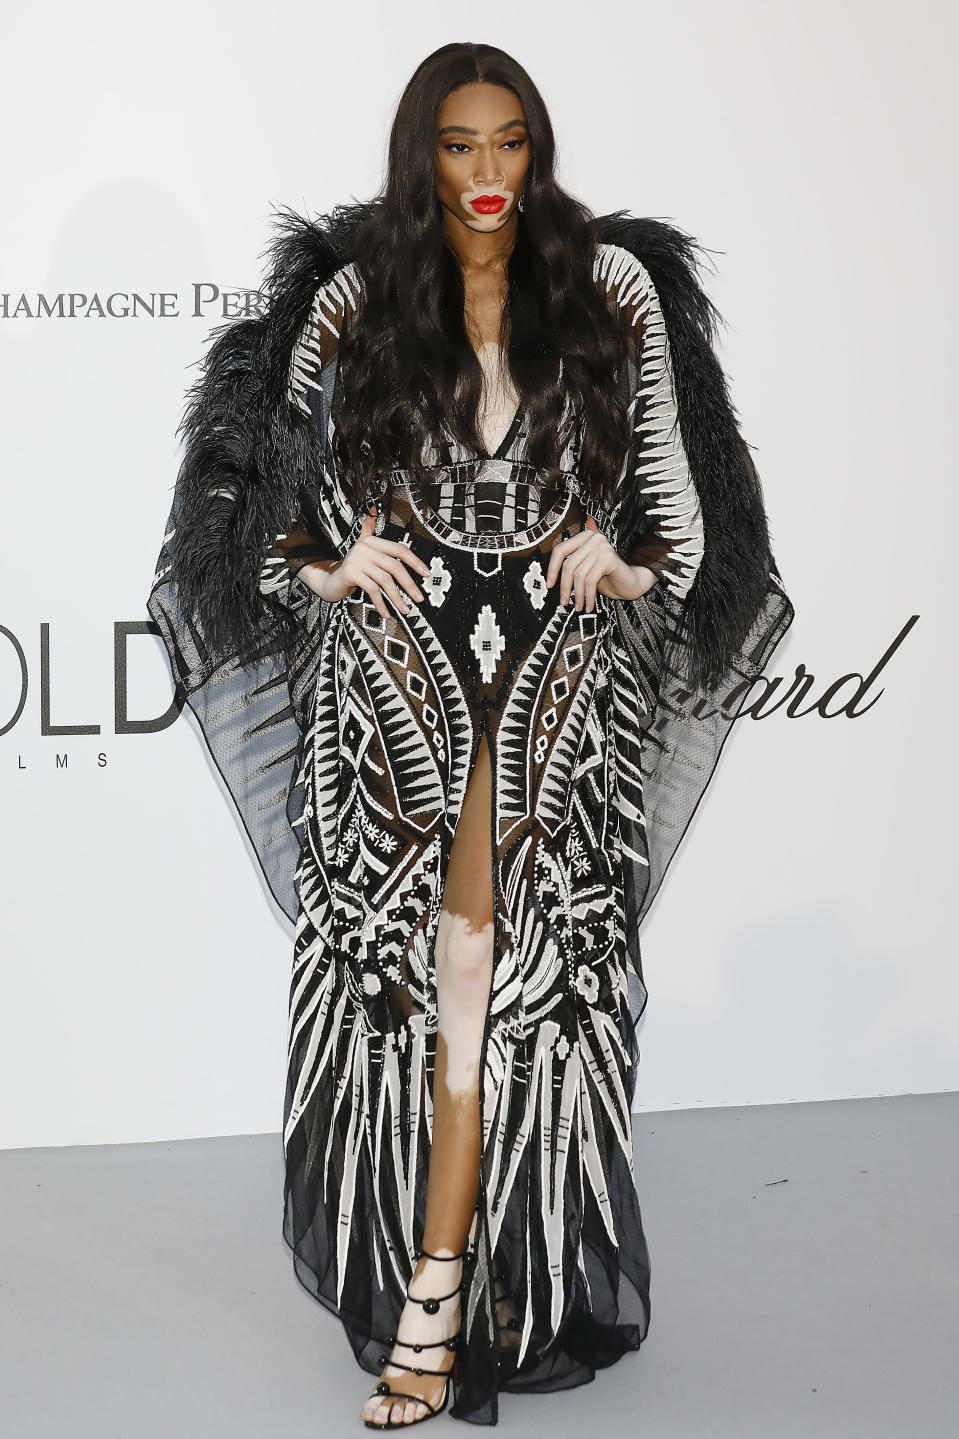 <p>Model Winnie Harlow wore an impressive feathered number by Zuhair Murad for the 2018 amfAR Gala during Cannes Film Festival. [Photo: Getty] </p>